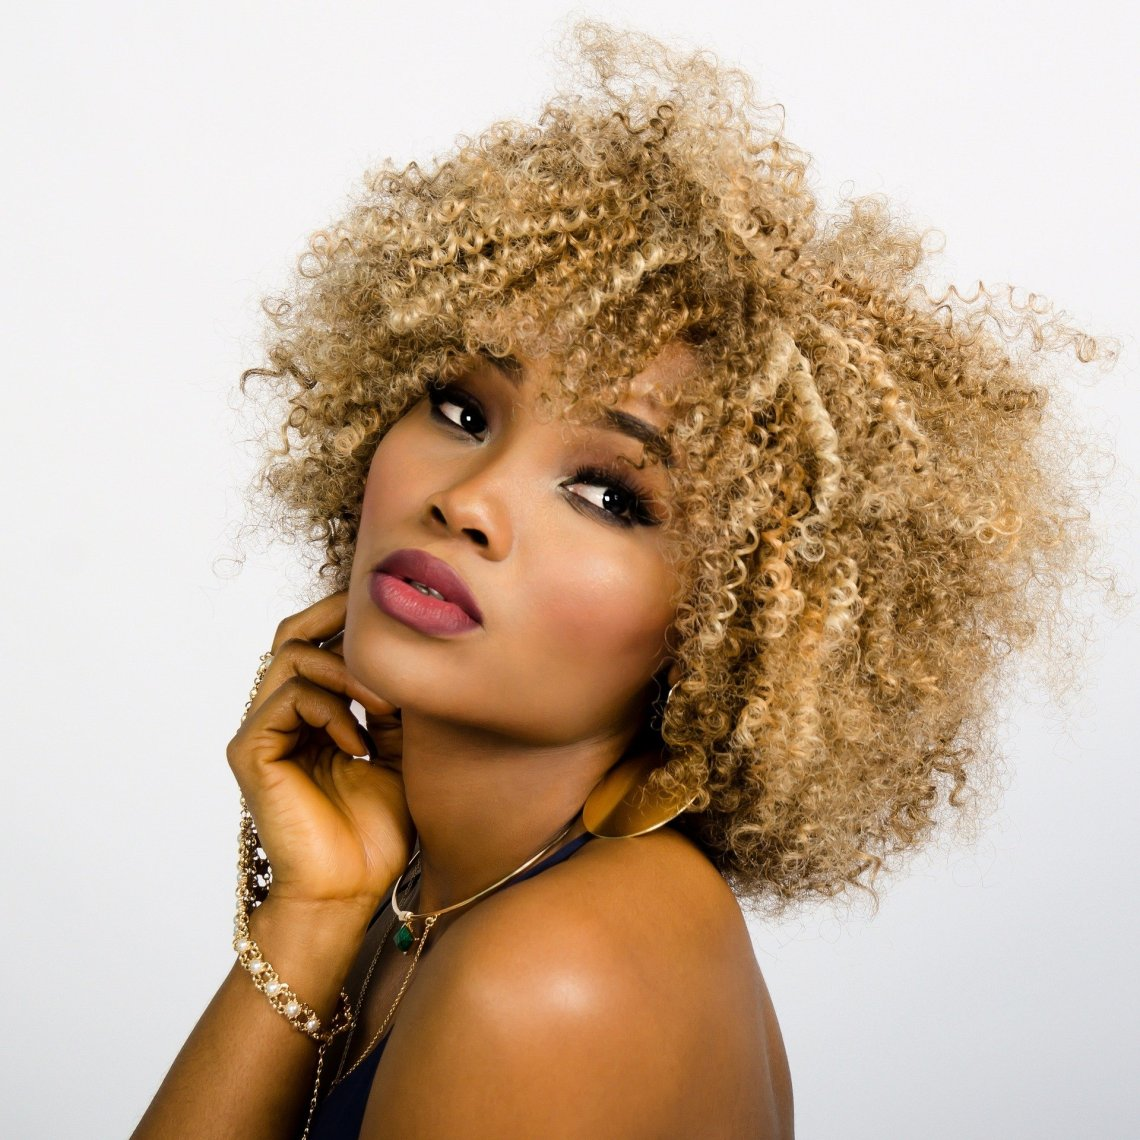 mixed race woman with blond curly hair